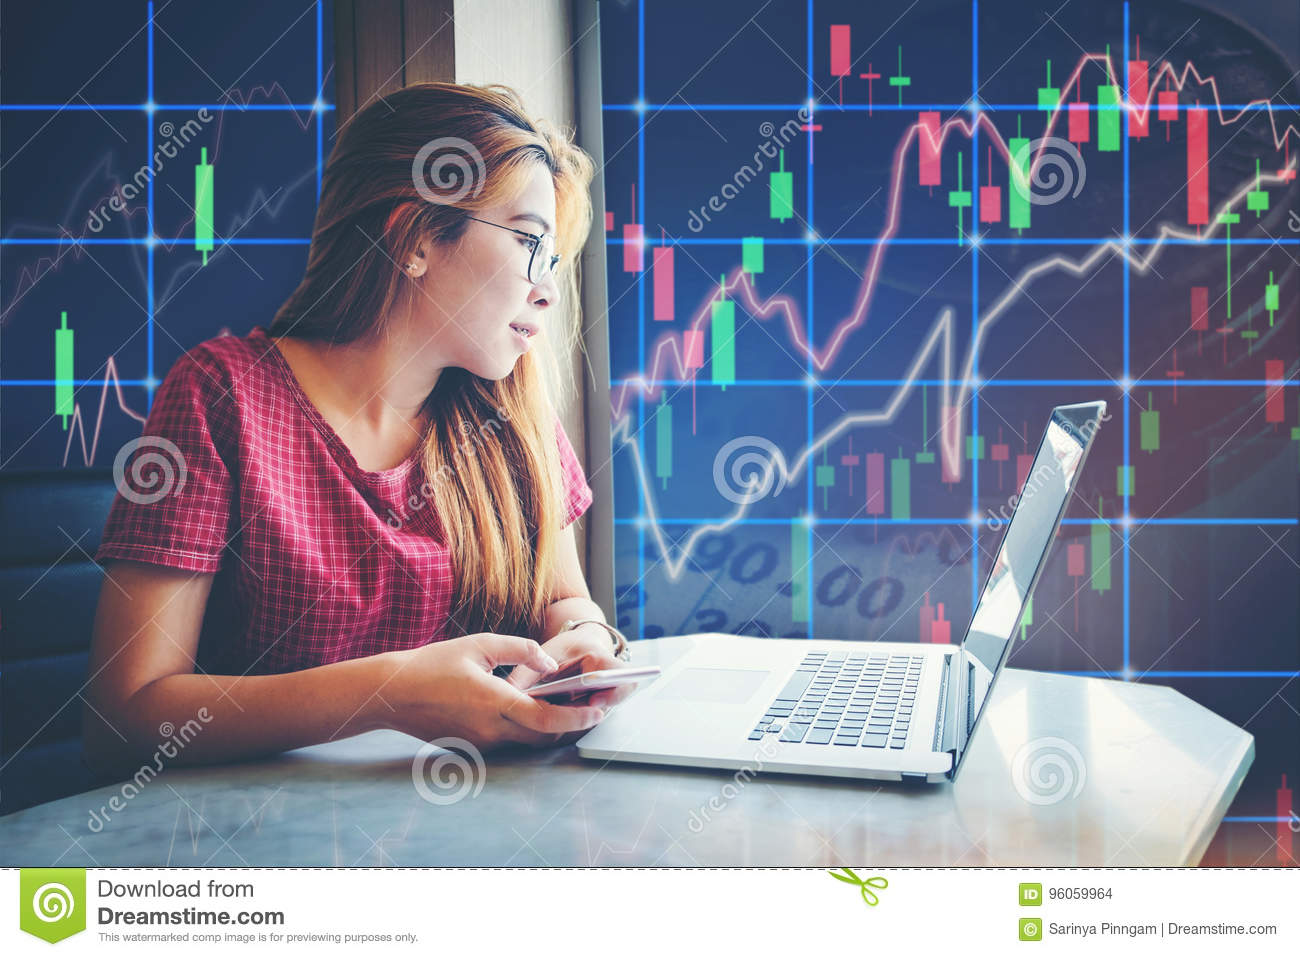 asian businesswoman sitting amd working Laptop Stock market exchange information and Trading graph